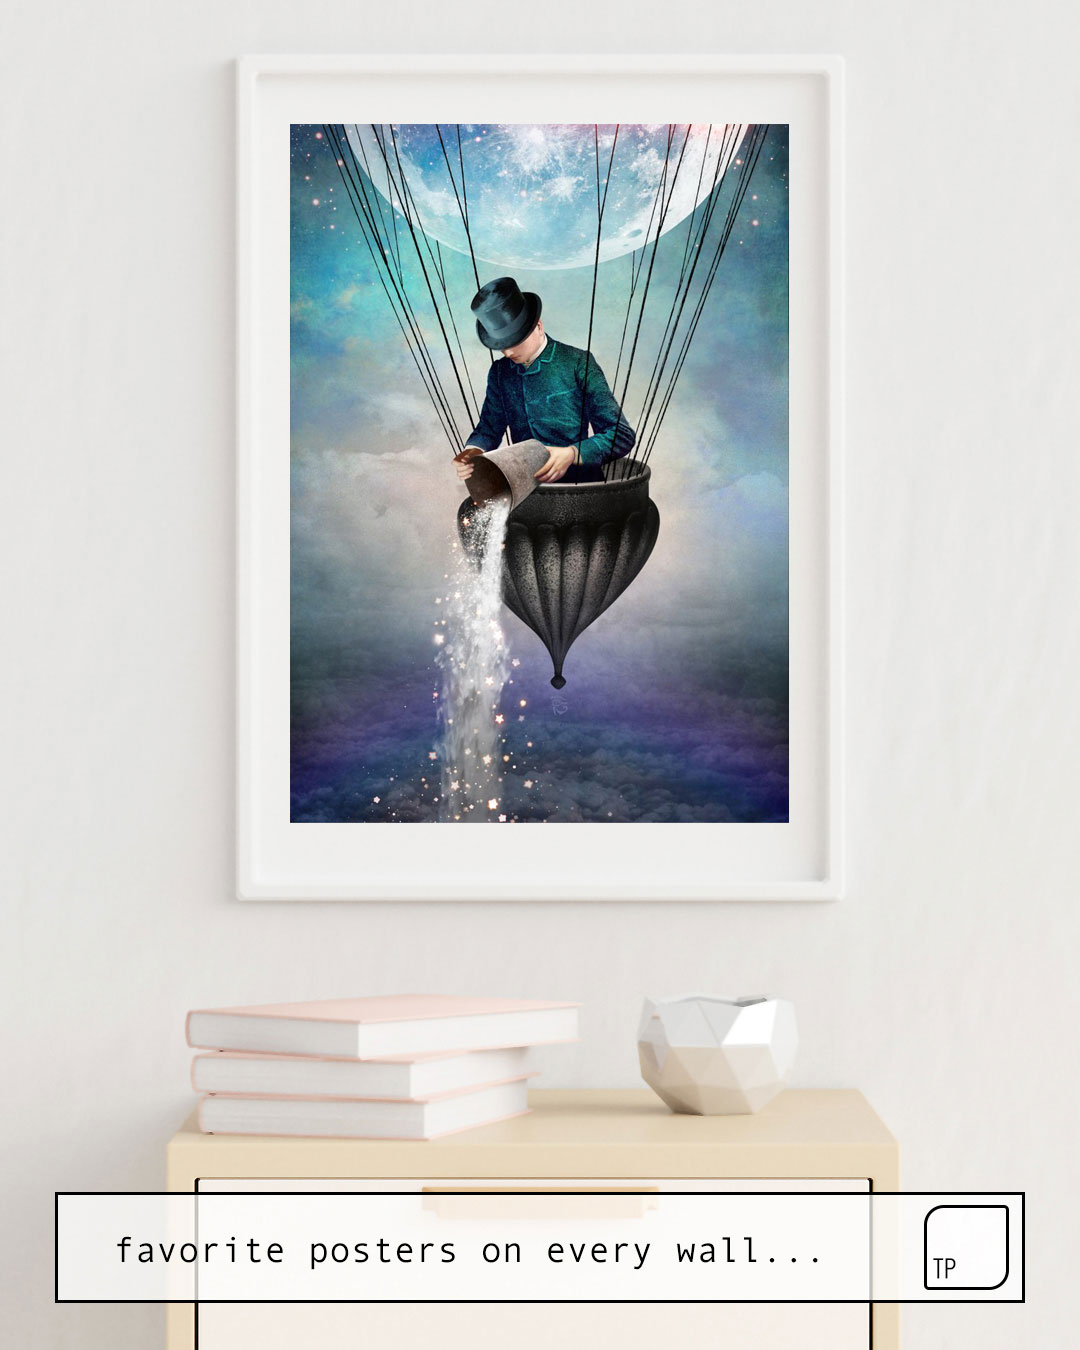 The photo shows an example of furnishing with the motif HIGH IN THE SKY by Christian Schloe as mural